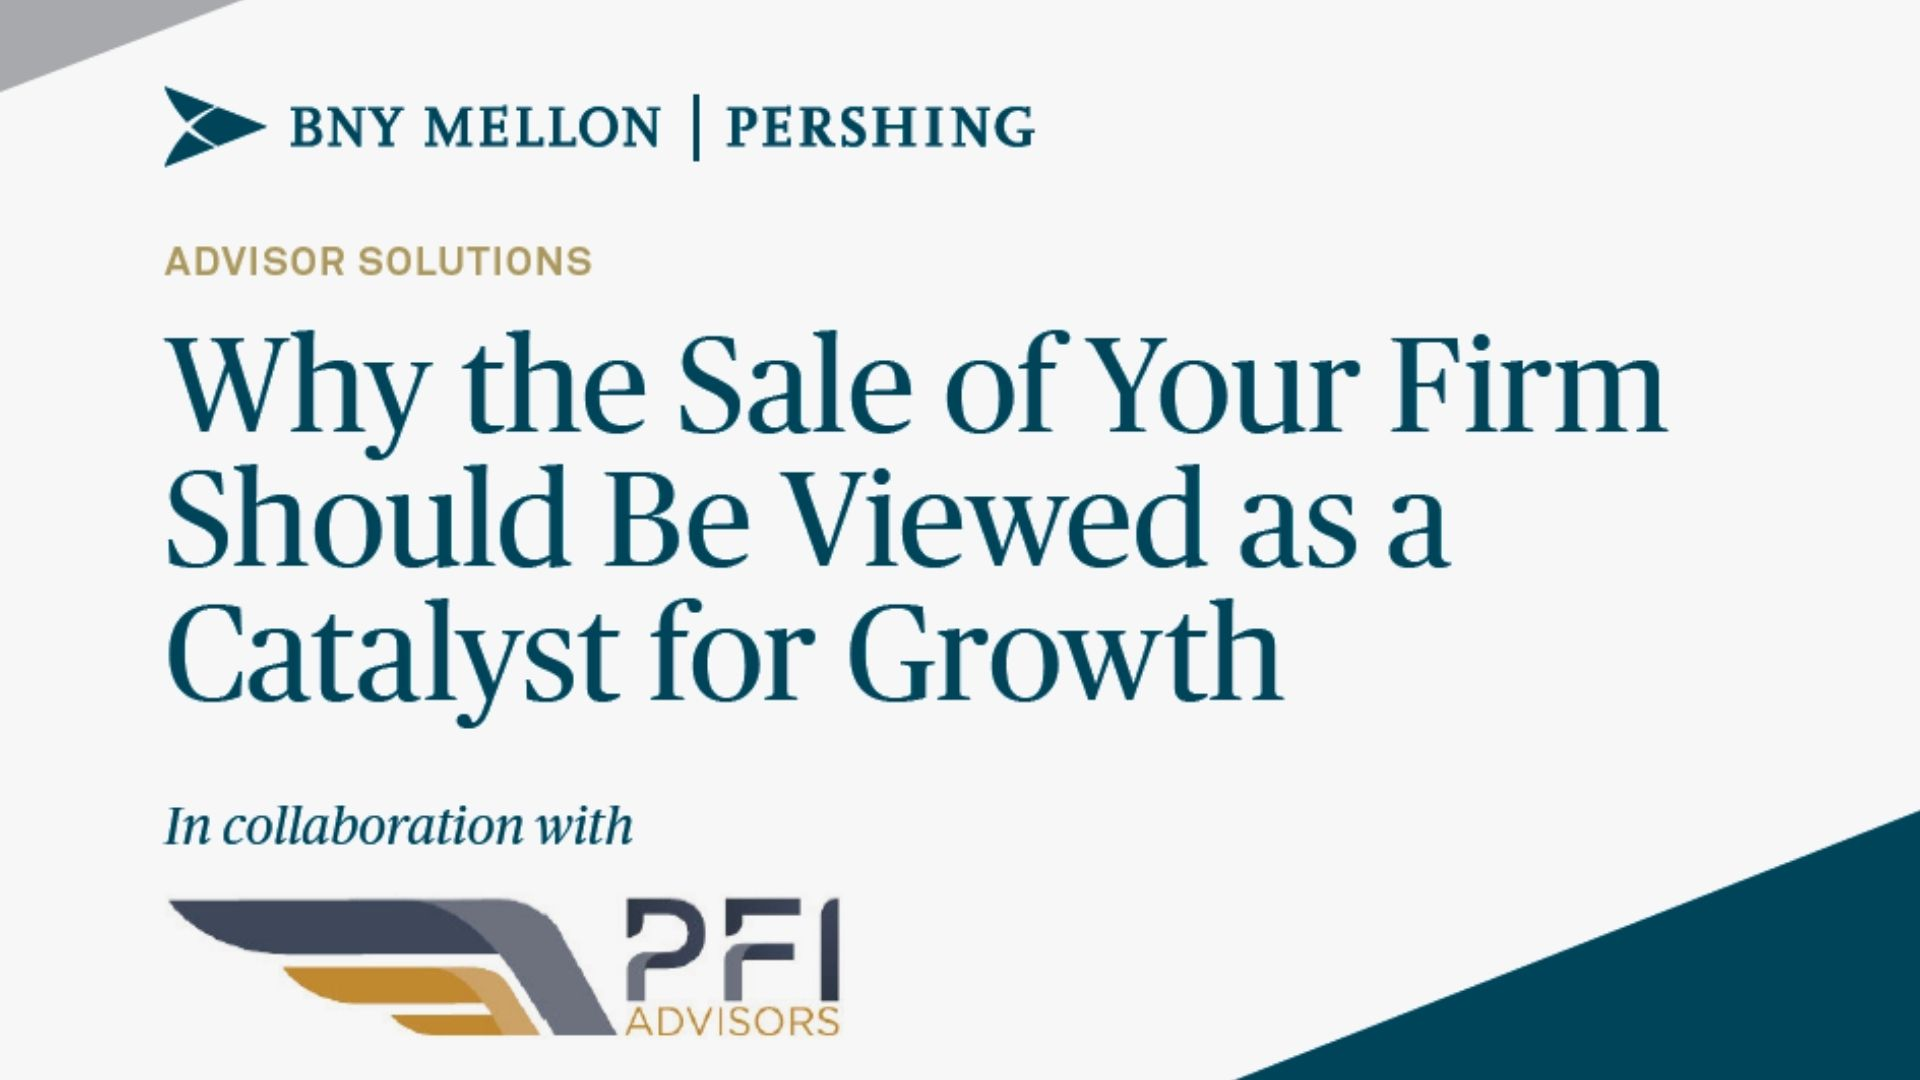 Joint M&A White Paper With  BNY Mellon | Pershing